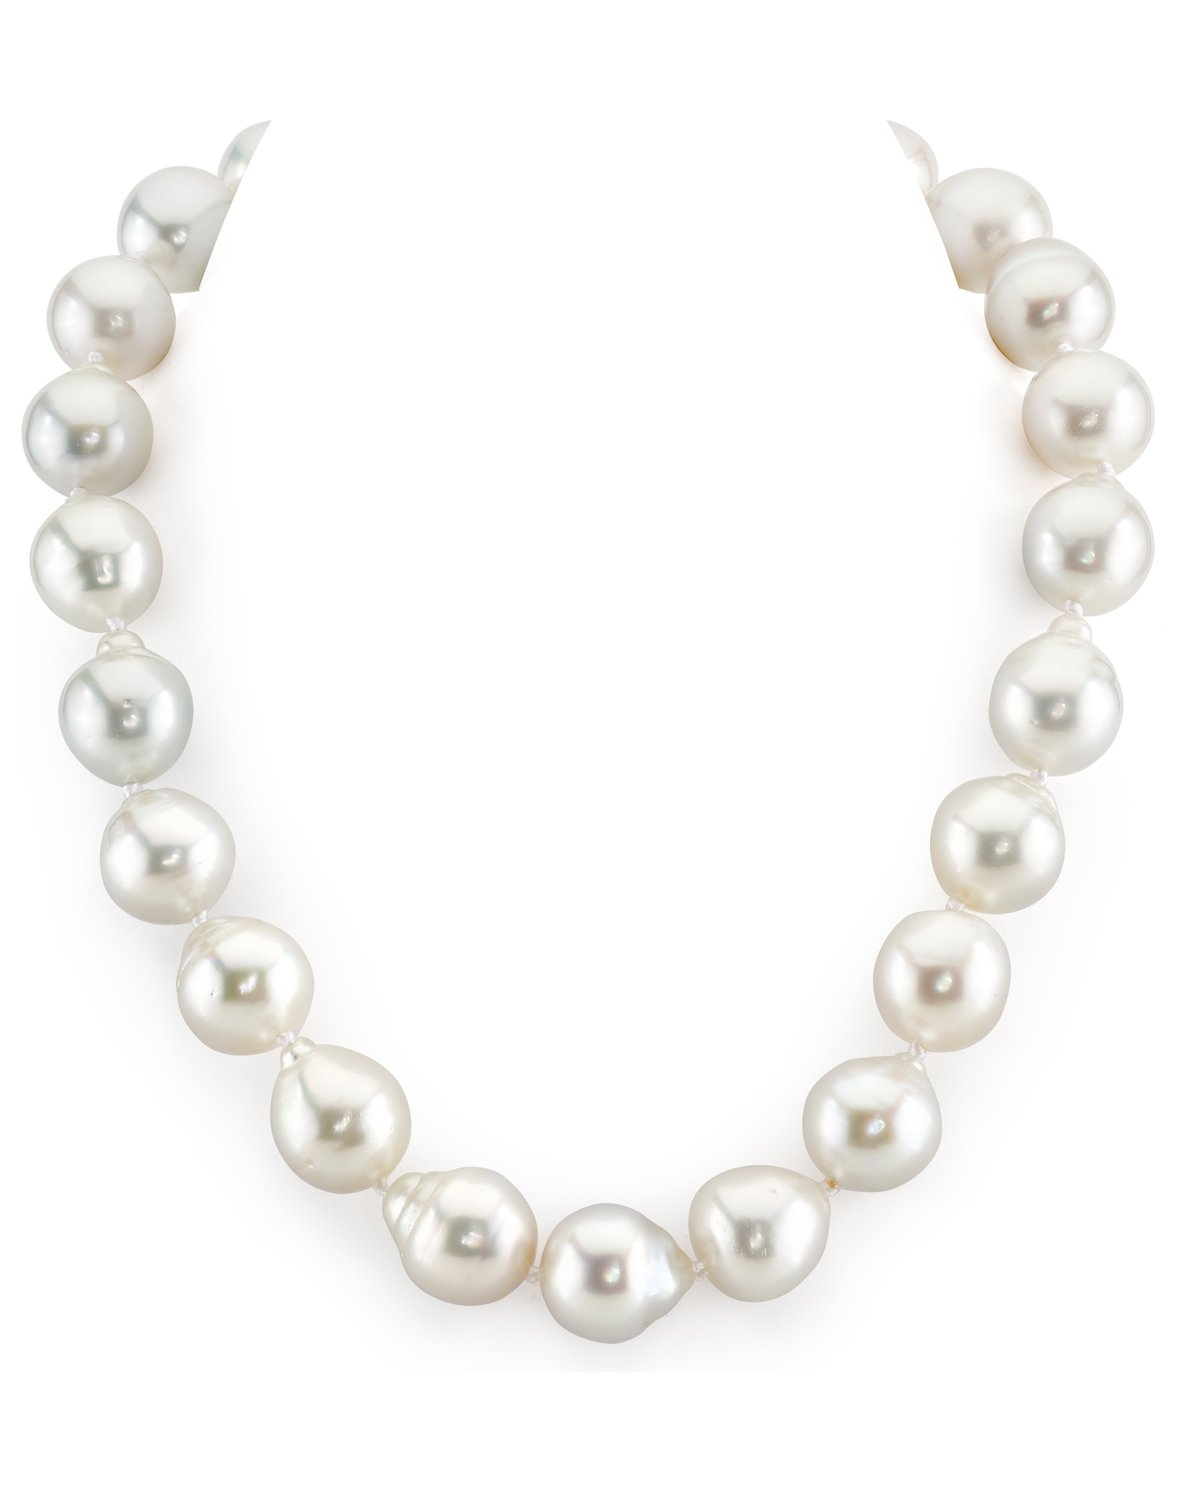 15-16mm White South Sea Baroque Pearl Necklace